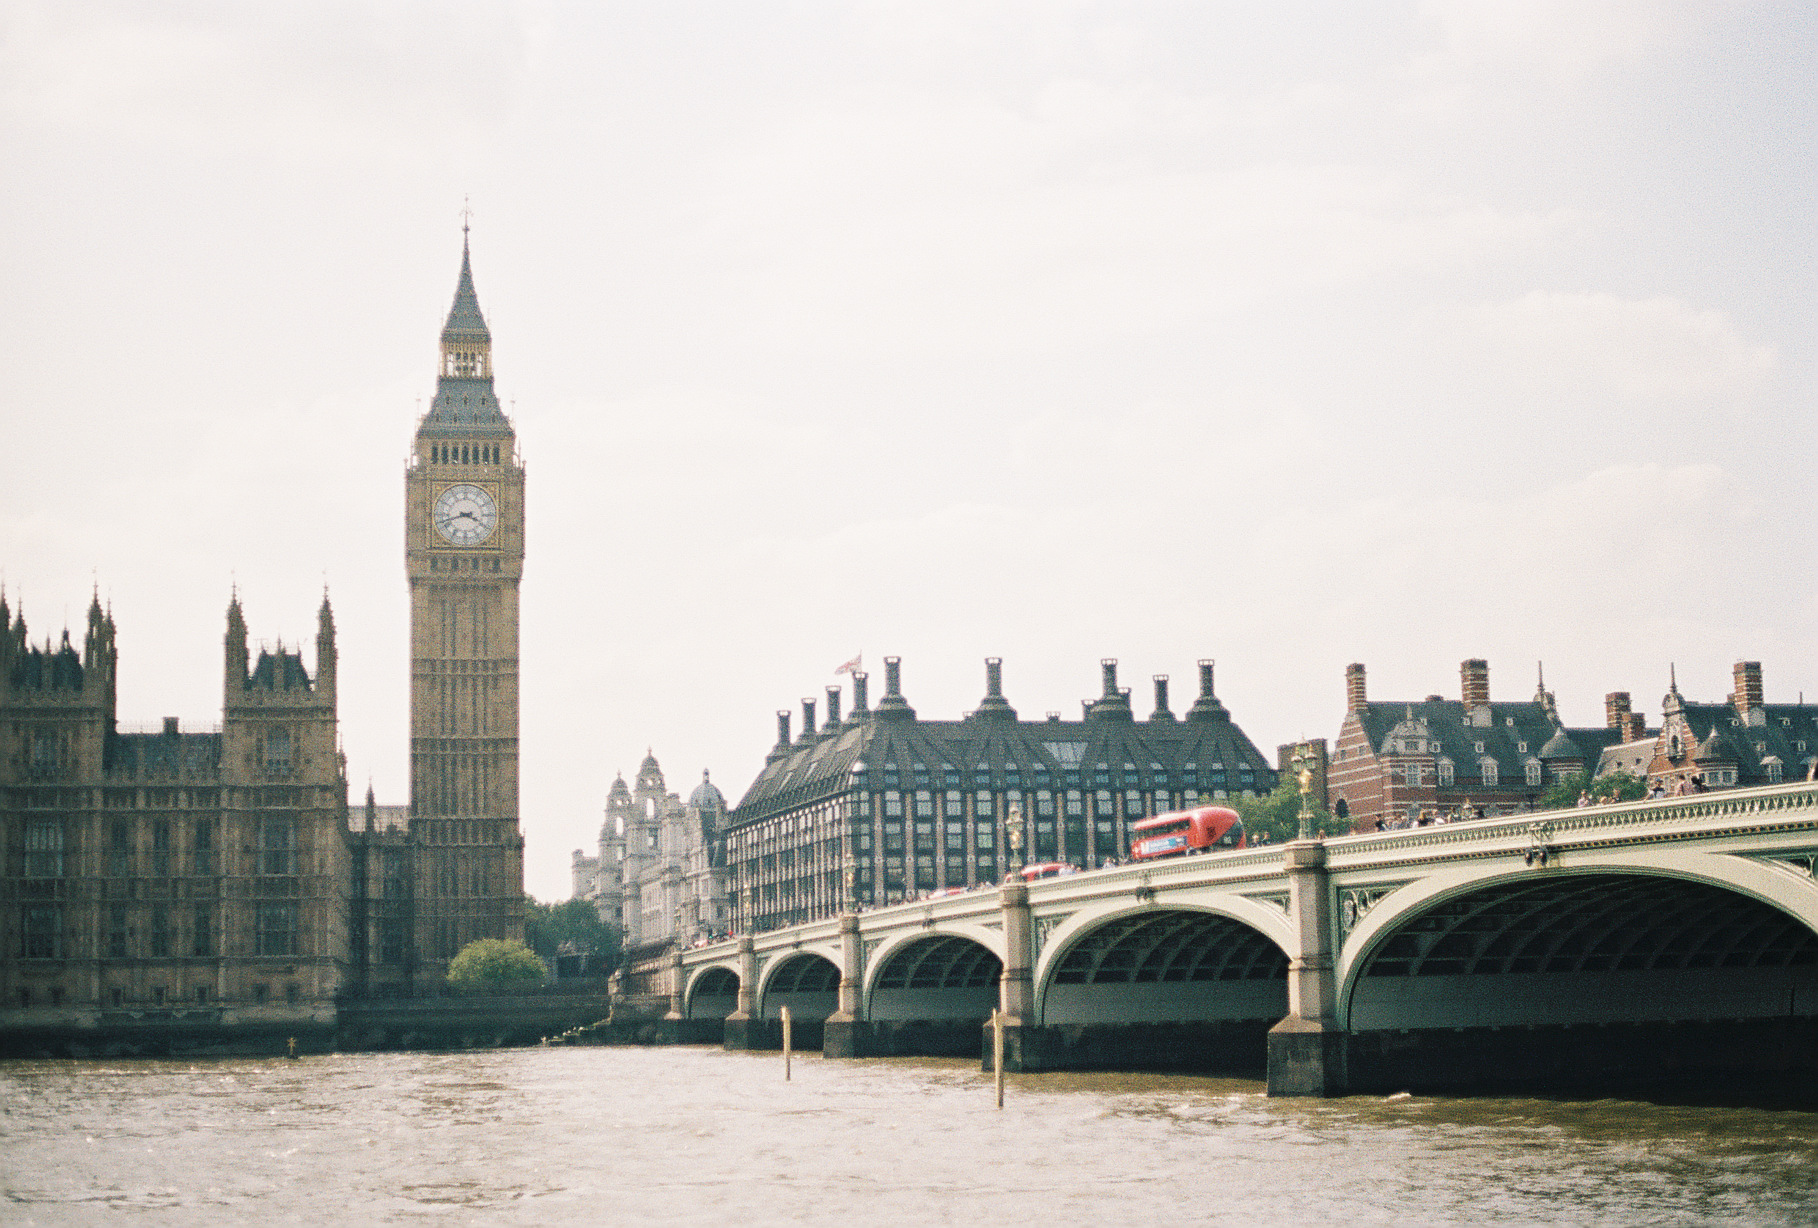 classic-big-ben-westminster-abbey-london-uk-european-honeymoon